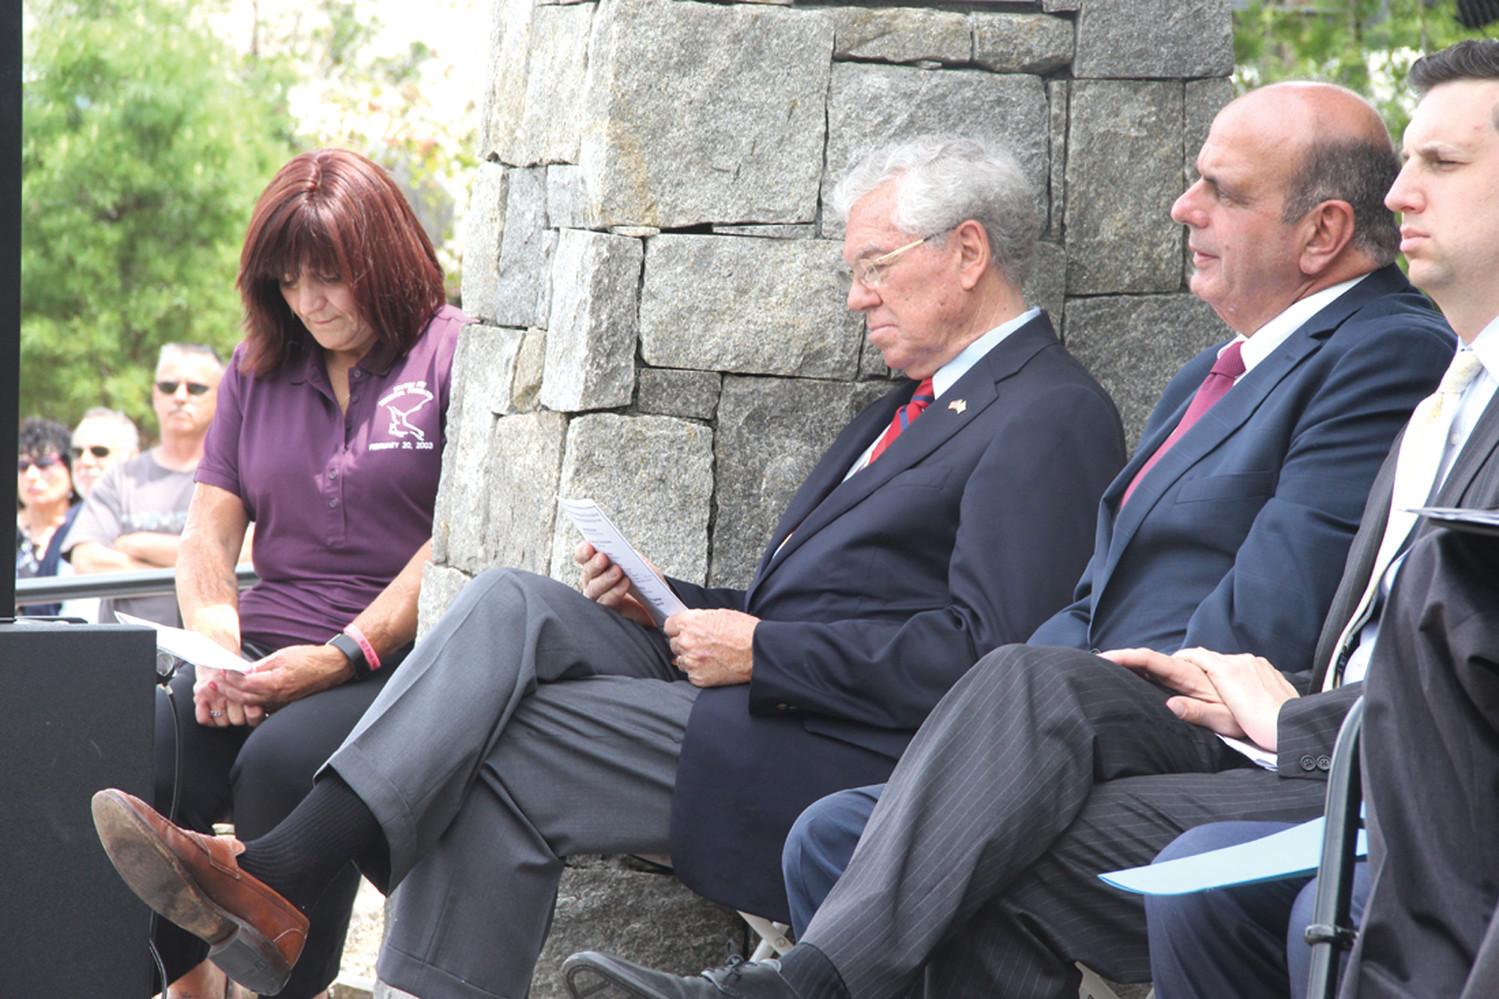 A SOLEMN OCCASION: Gina Russo, president of the Station Fire Memorial Foundation, former Gov. Donald Carcieri, Warwick Acting Mayor Joseph Solomon and General Treasurer Seth Magaziner listen to remarks during Sunday's observance.